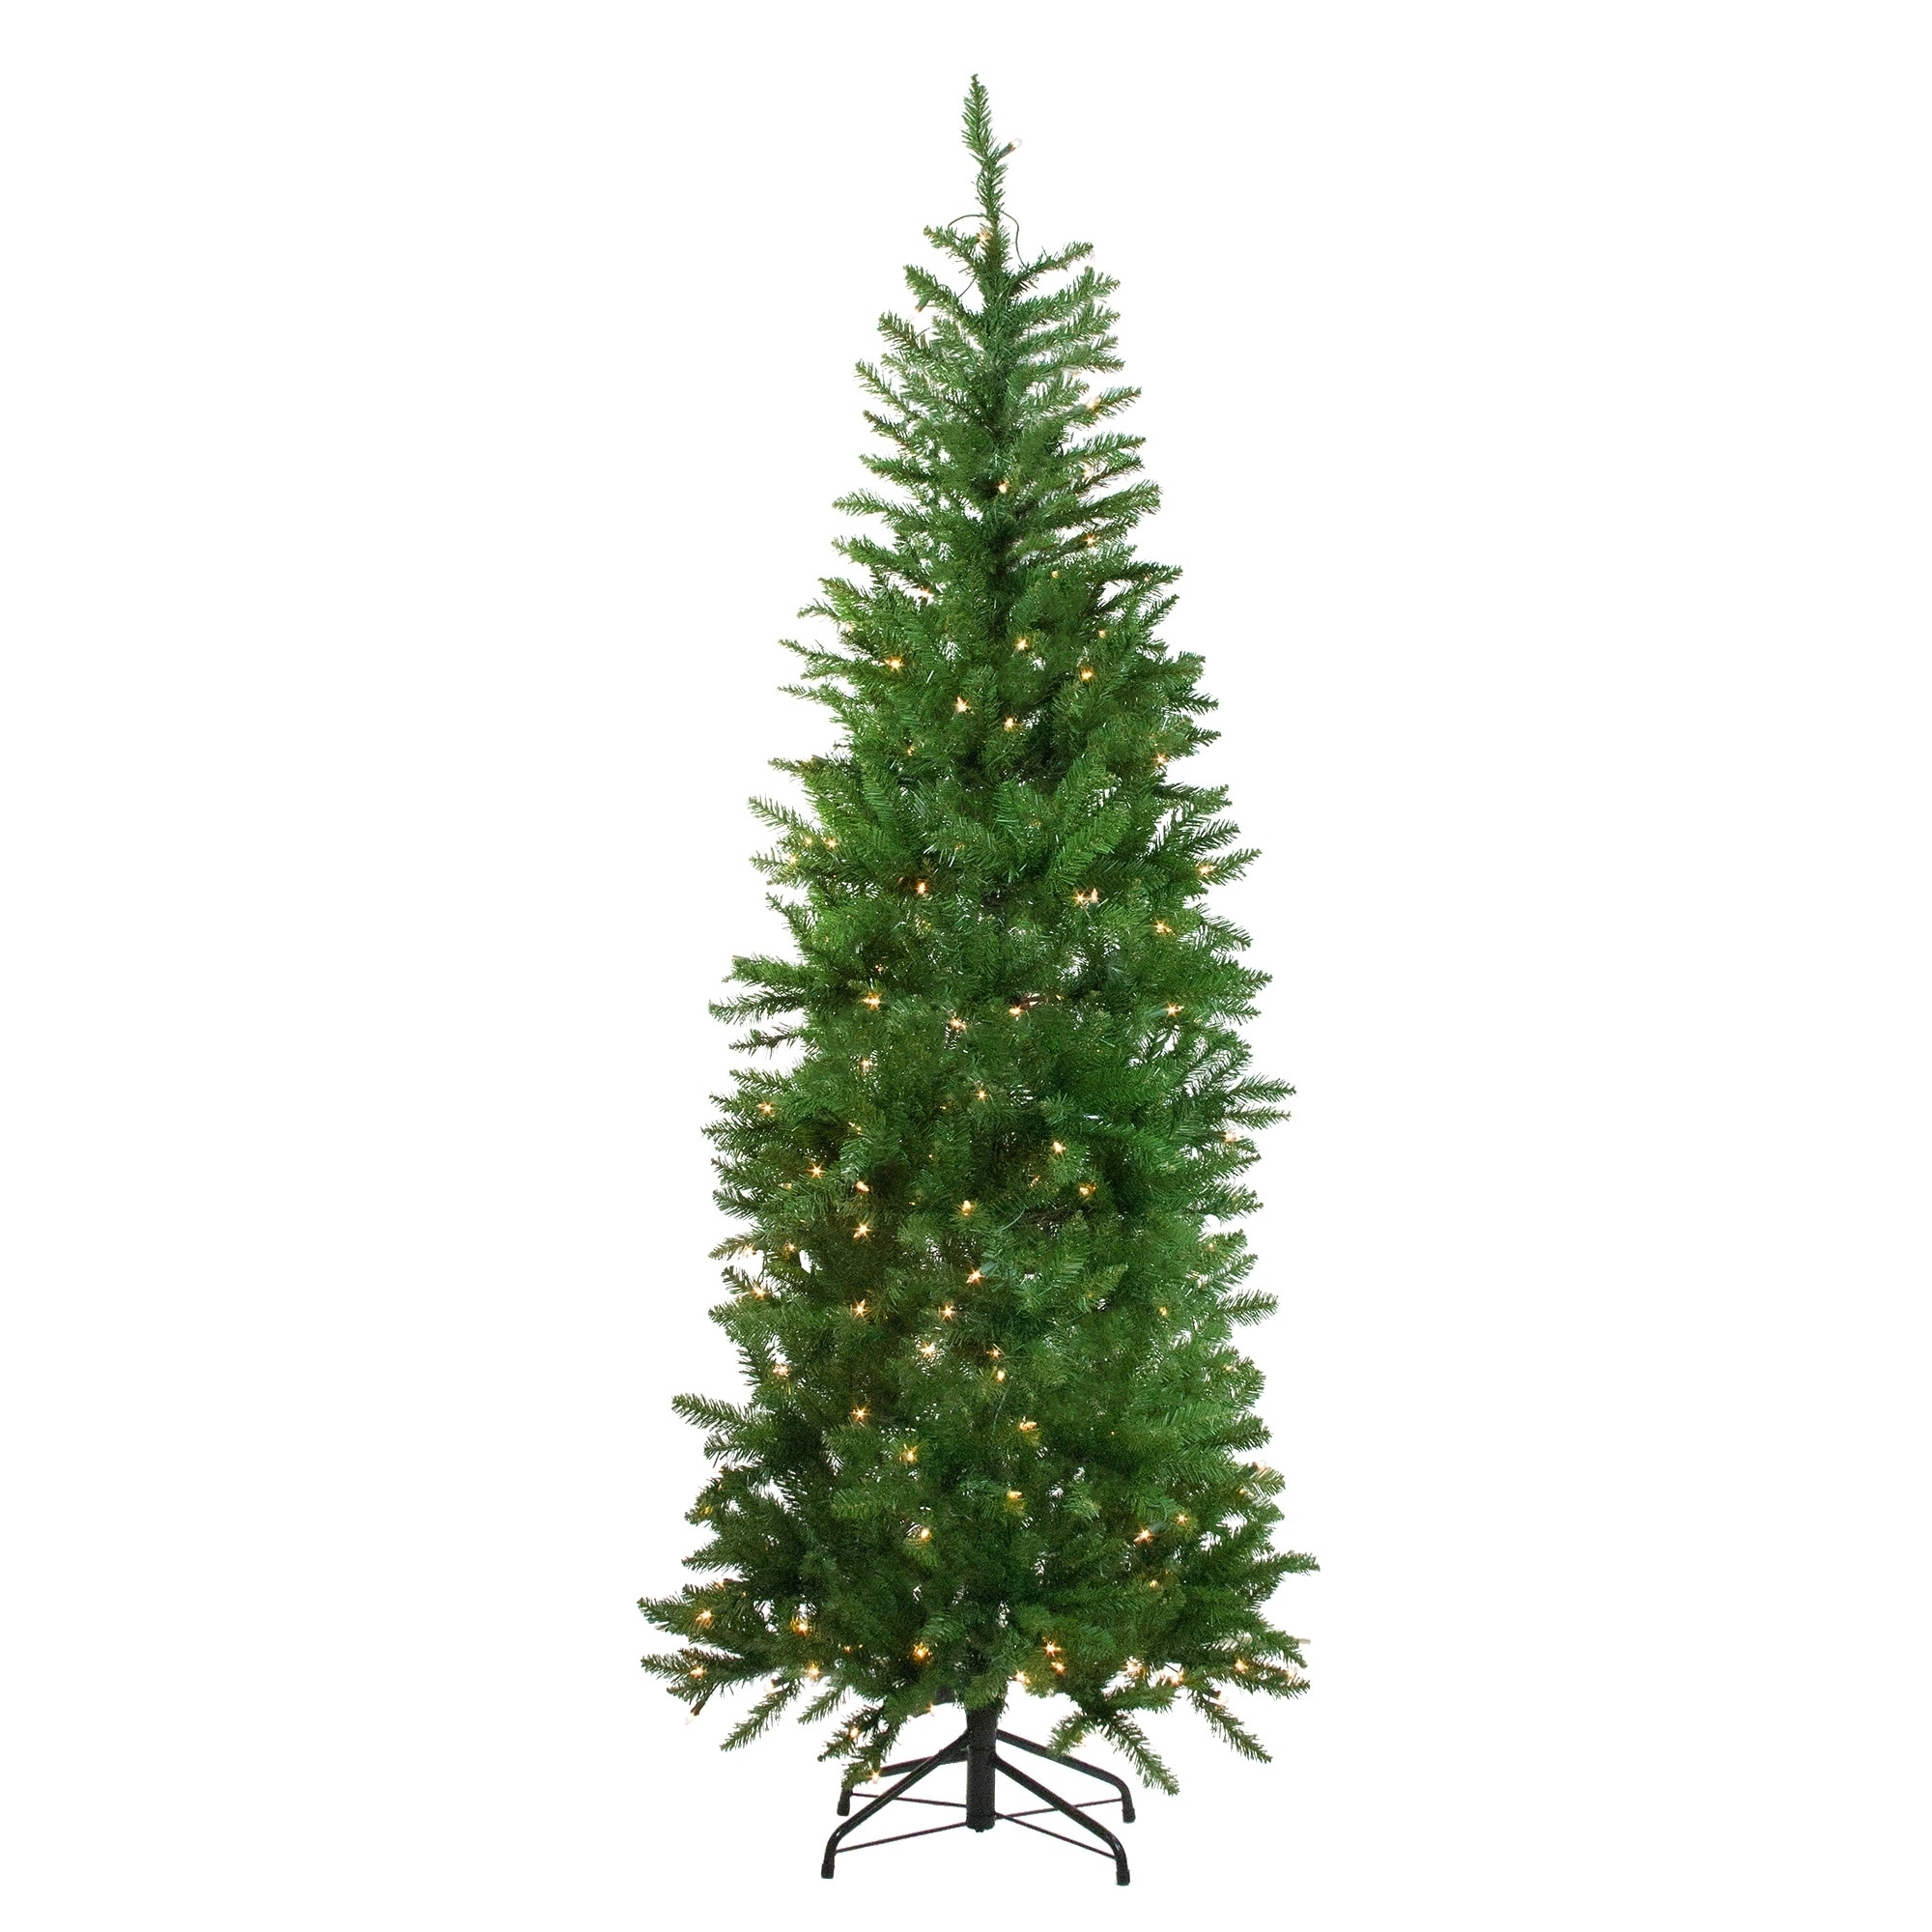 6 5 X 28 Pre Lit White River Fir Artificial Pencil Christmas Tree Clear Lights